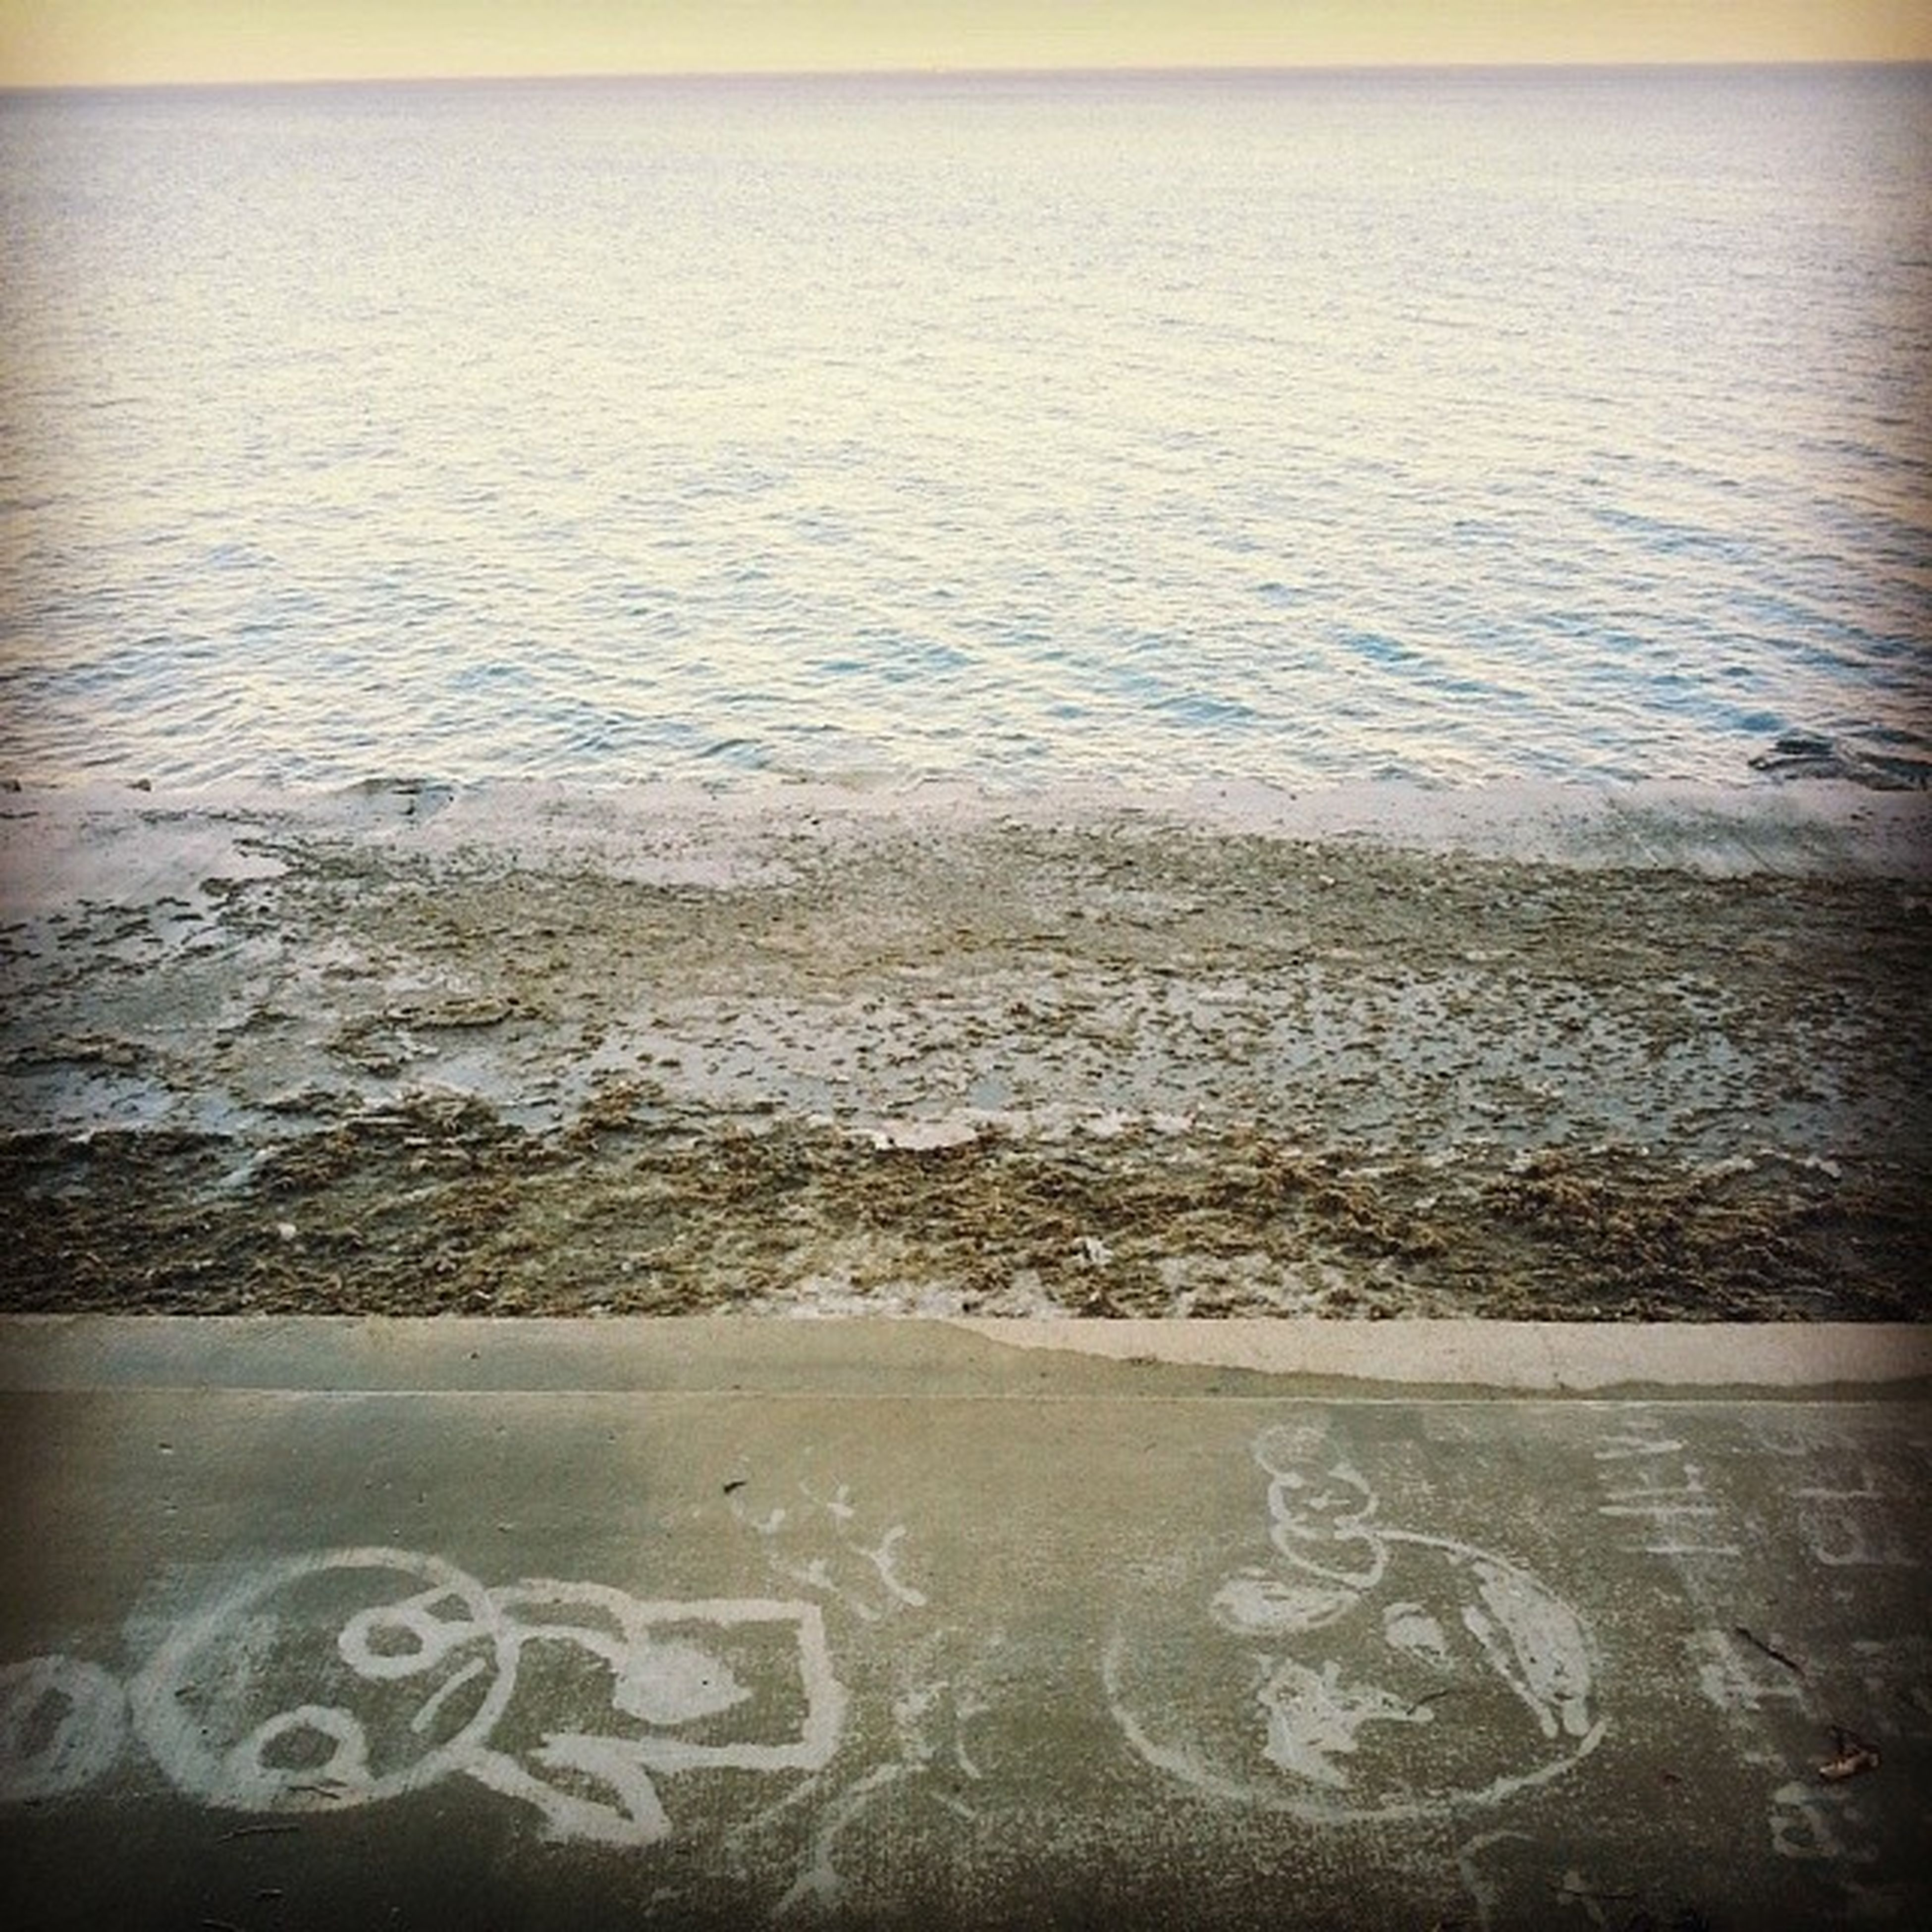 water, sea, horizon over water, beach, shore, tranquil scene, text, tranquility, scenics, nature, beauty in nature, western script, sand, wave, rippled, idyllic, sky, outdoors, no people, communication